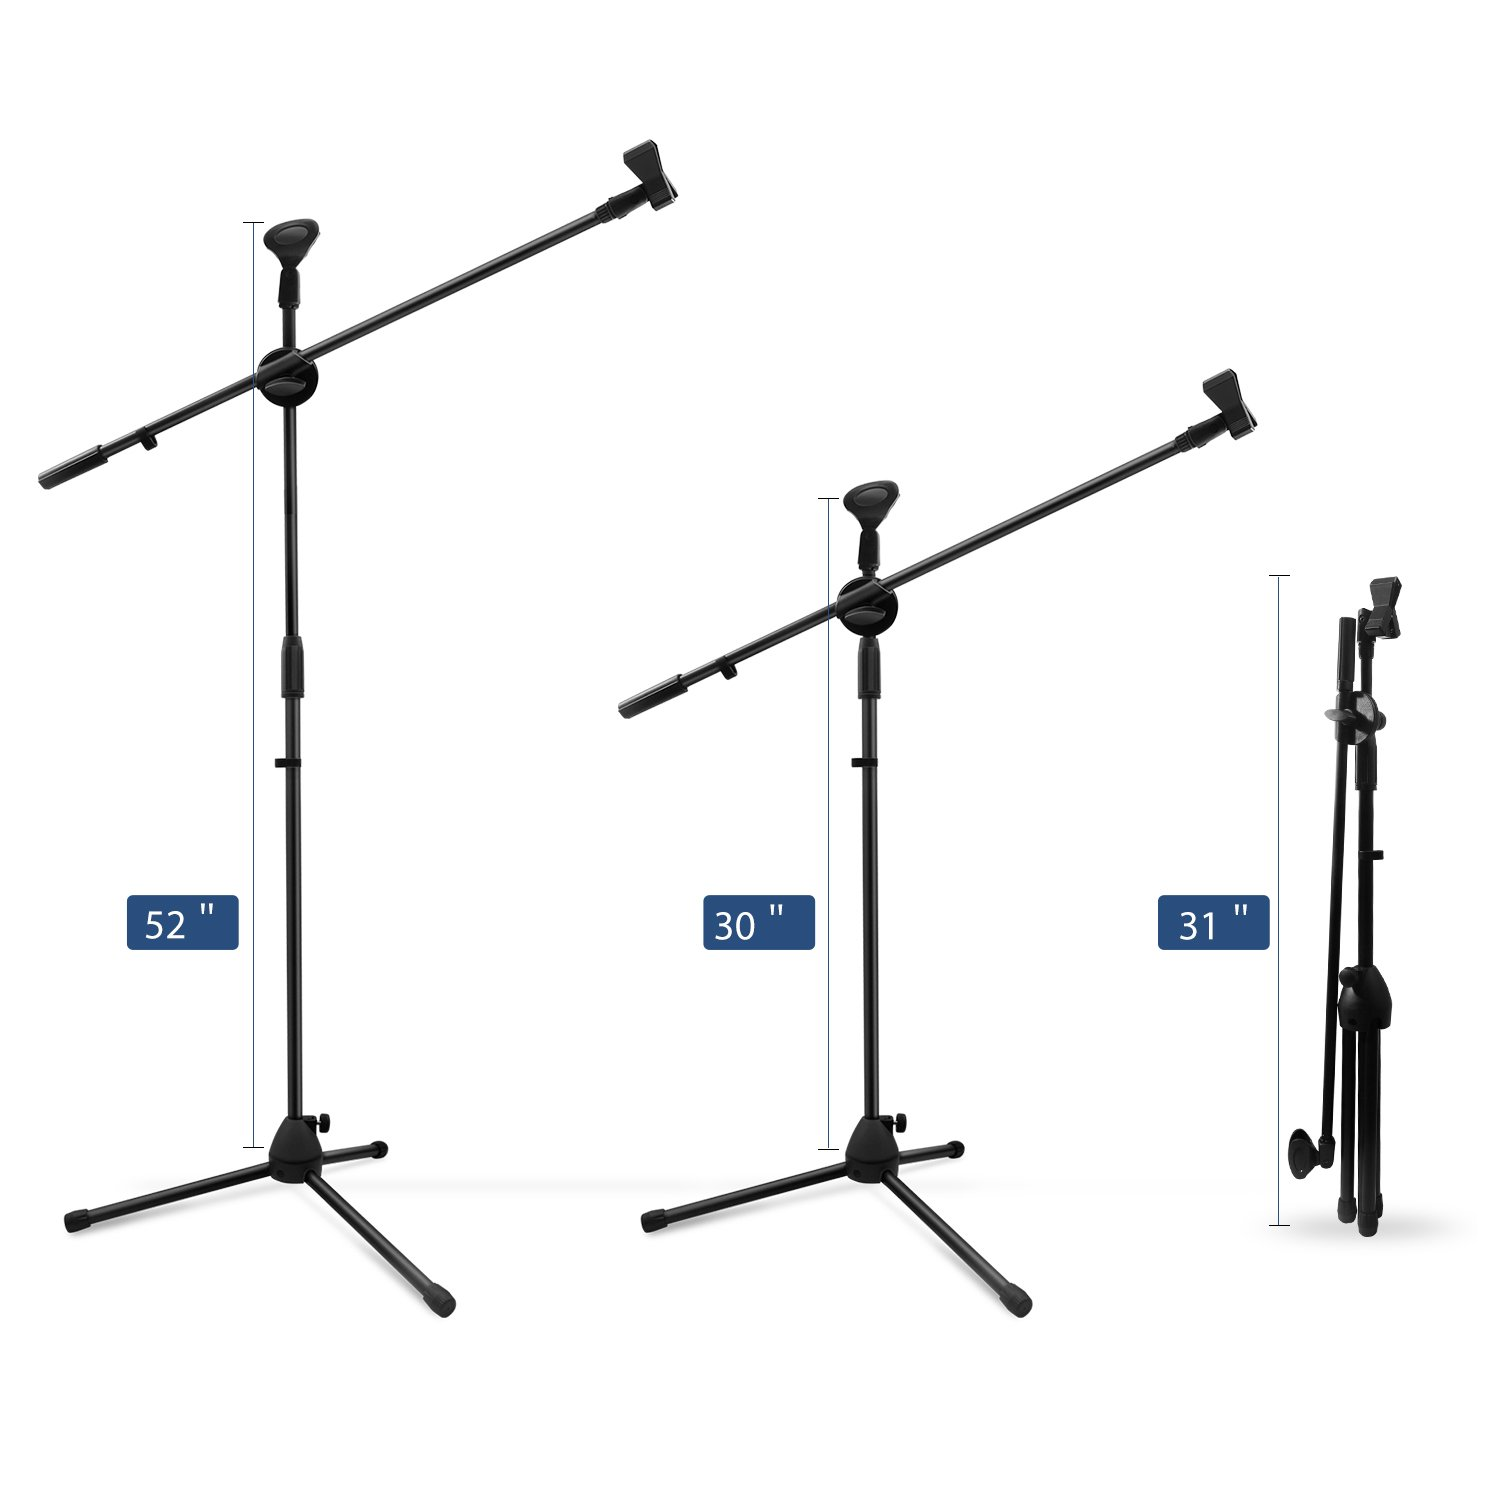 Microphone Stand, Ohuhu Tripod Boom Mic Stands with 2 Mic Clip Holders, Adjustable, Collapsible, Black by Ohuhu (Image #3)